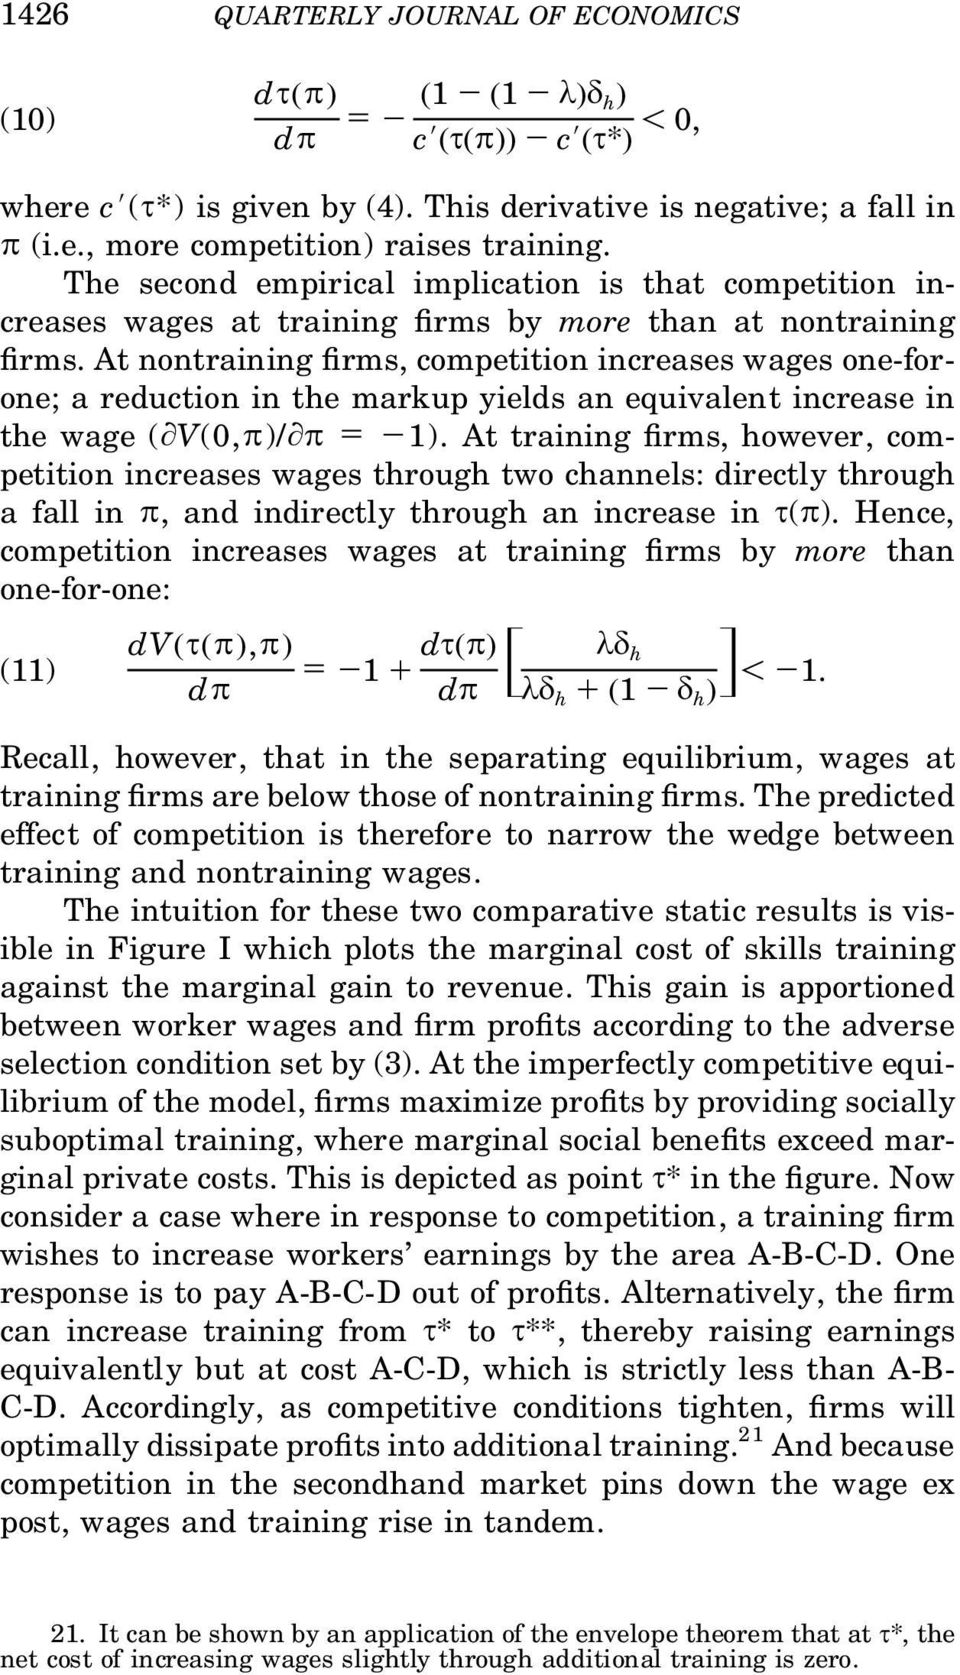 At nontraining rms, competition increases wages one-forone; a reduction in the markup yields an equivalent increase in the wage (] V(0,p )/] p 5 2 1).